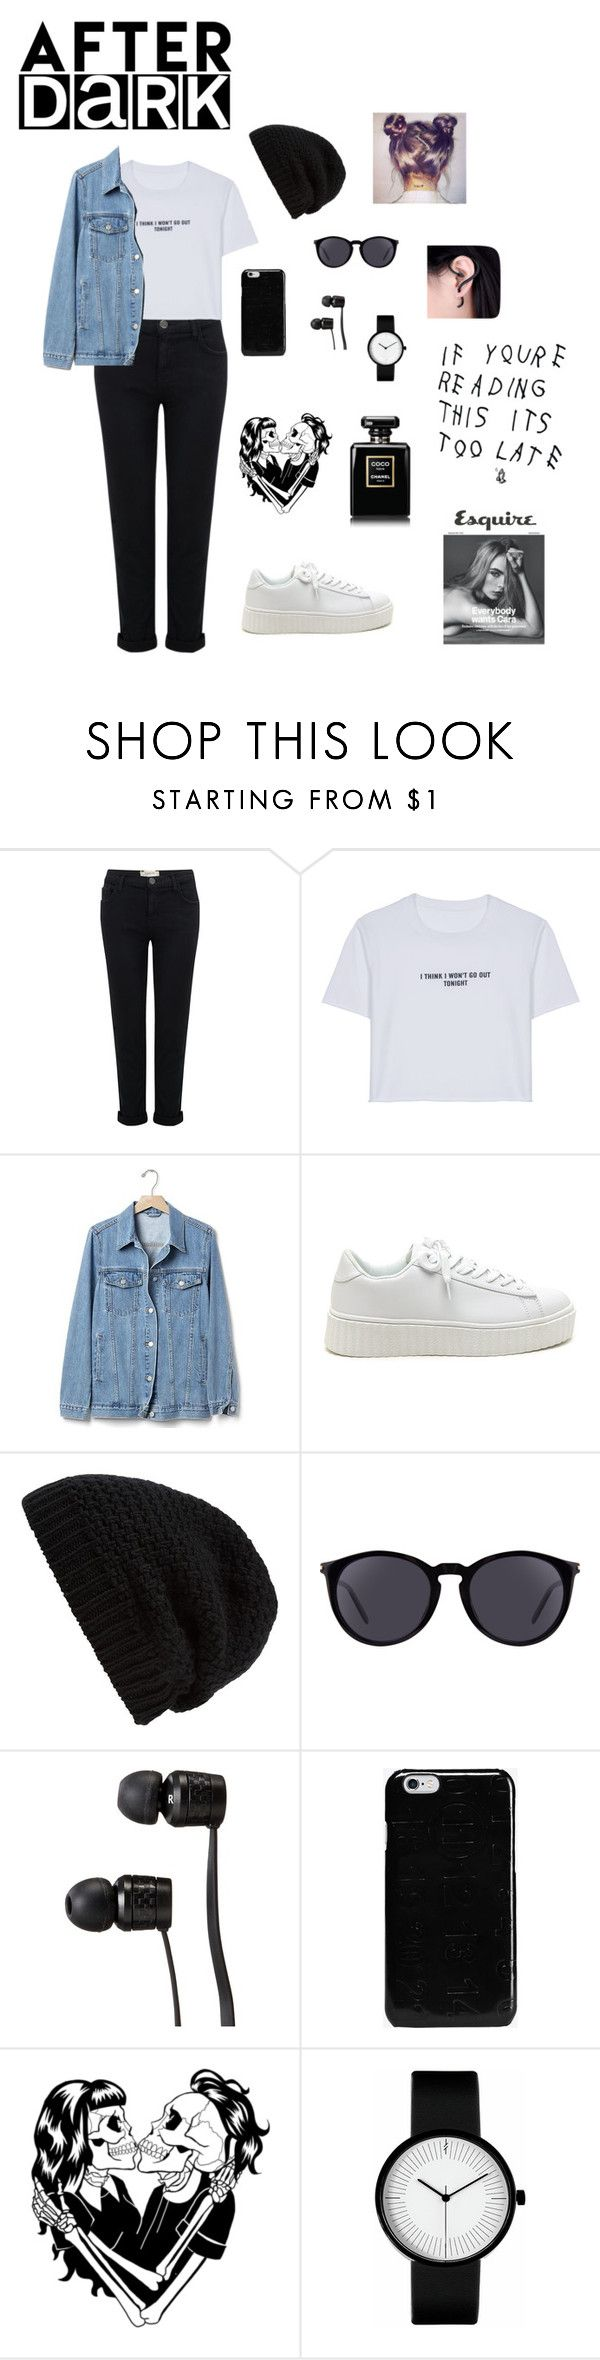 """DARK"" by martizlee ❤ liked on Polyvore featuring Current/Elliott, WithChic, Gap, Rick Owens, Yves Saint Laurent, Vans, Maison Margiela, Deandri, BackToSchool and blackandwhite"